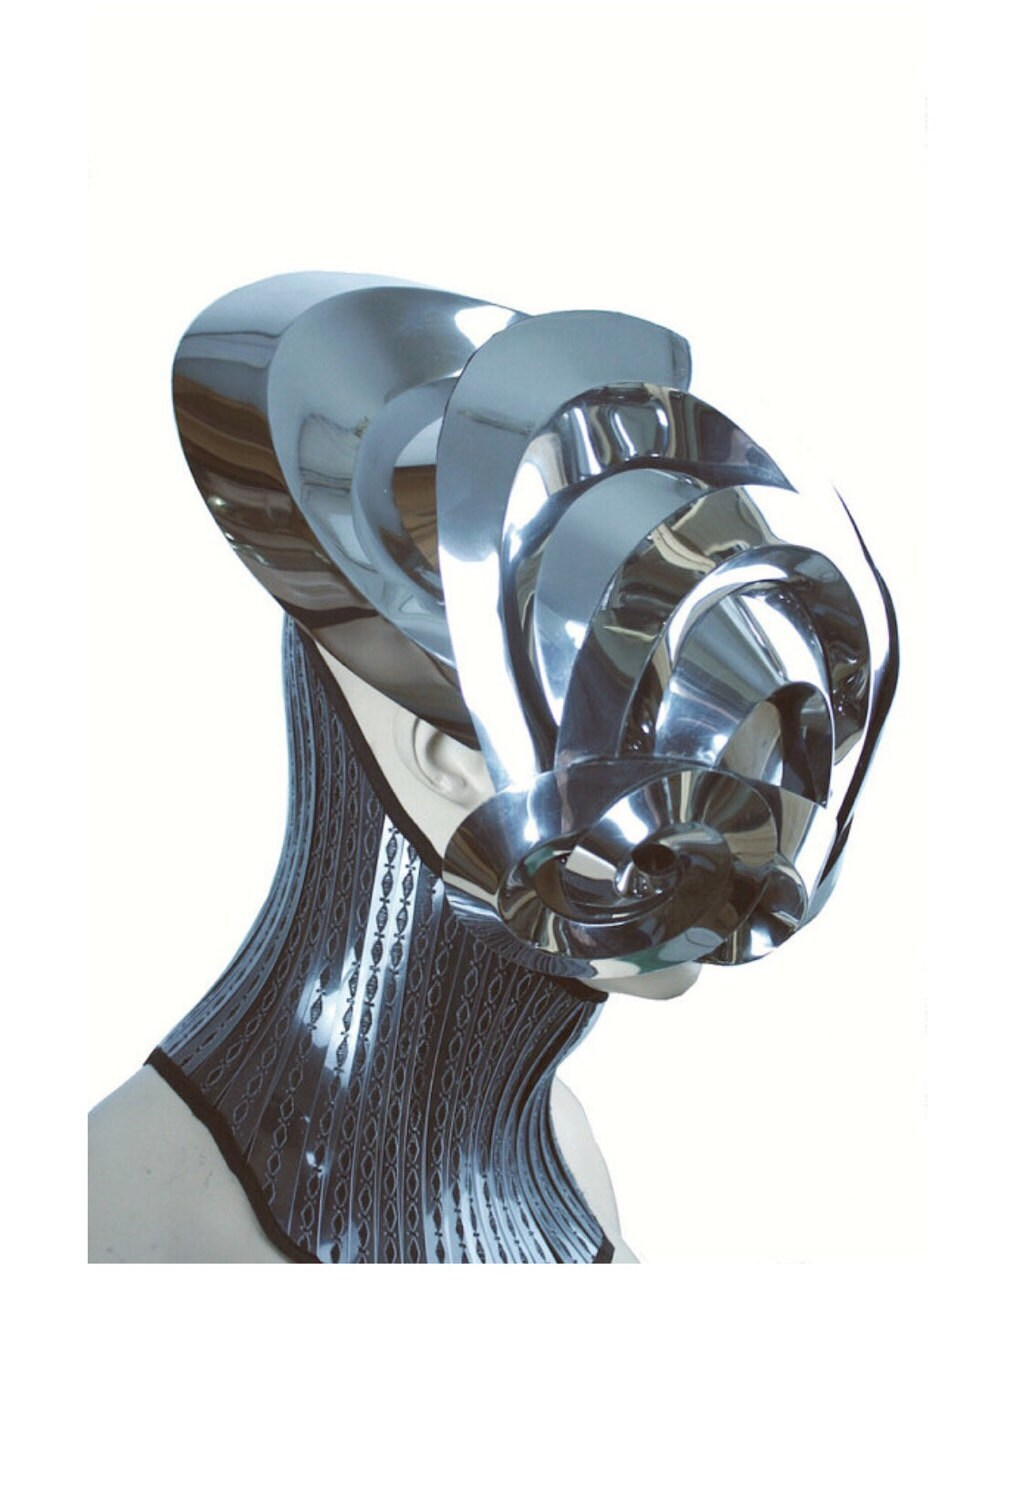 Mantis alien robot mask headpiece armour sci fi futuristic